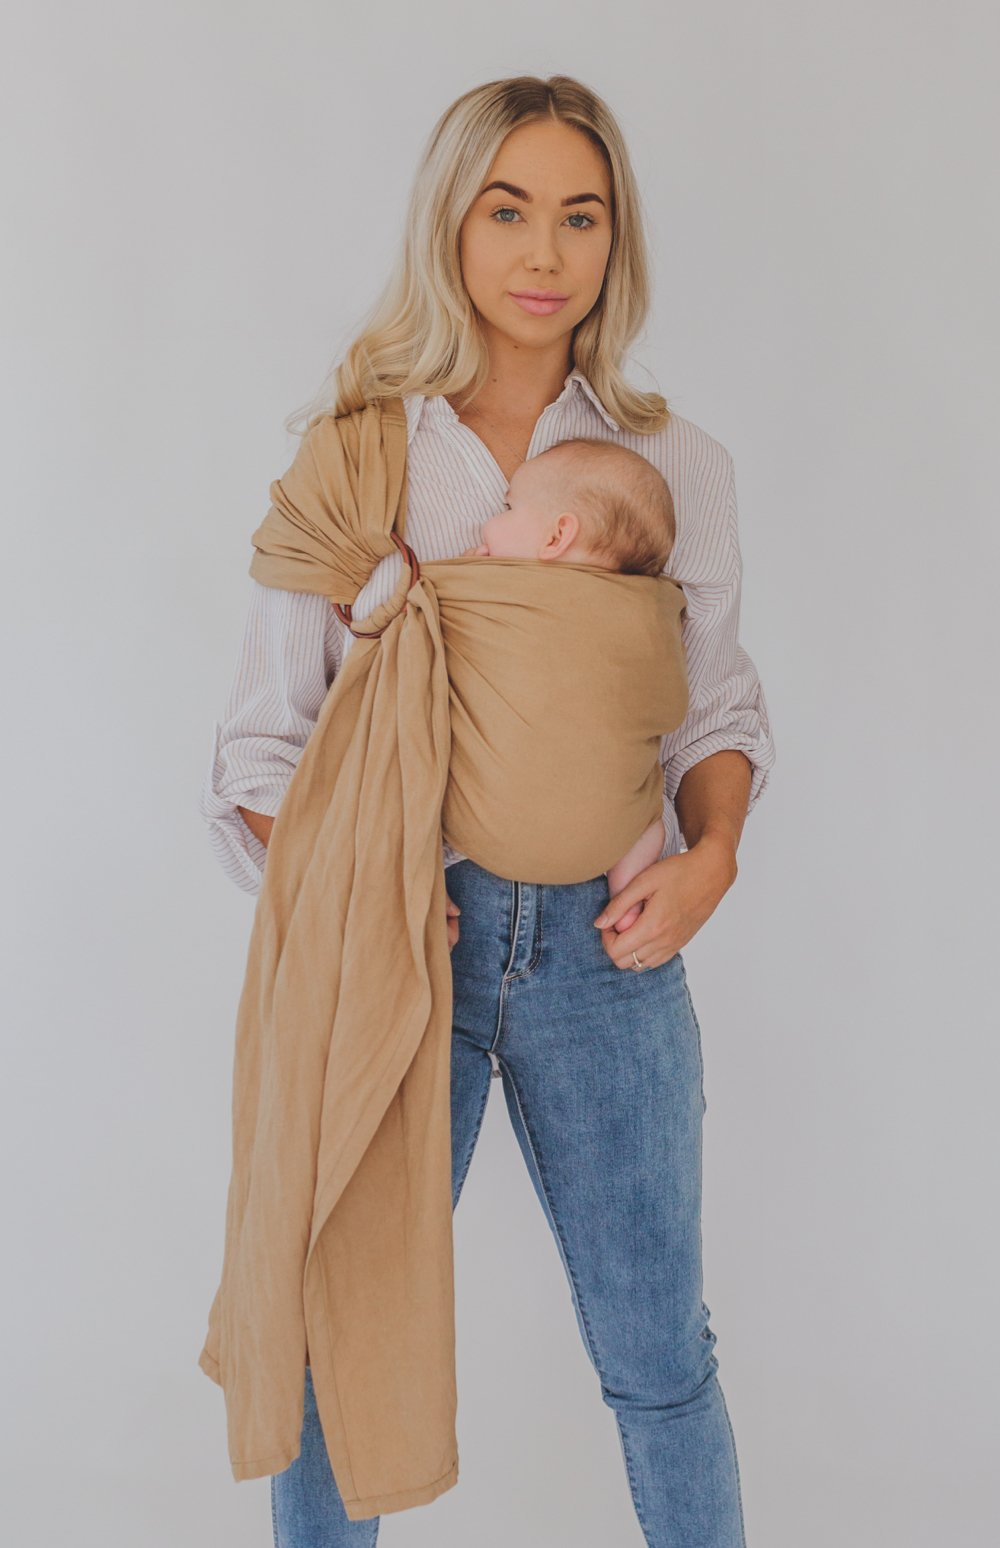 australia's best chekoh camel baby sling carrier for newborn, infant and toddler